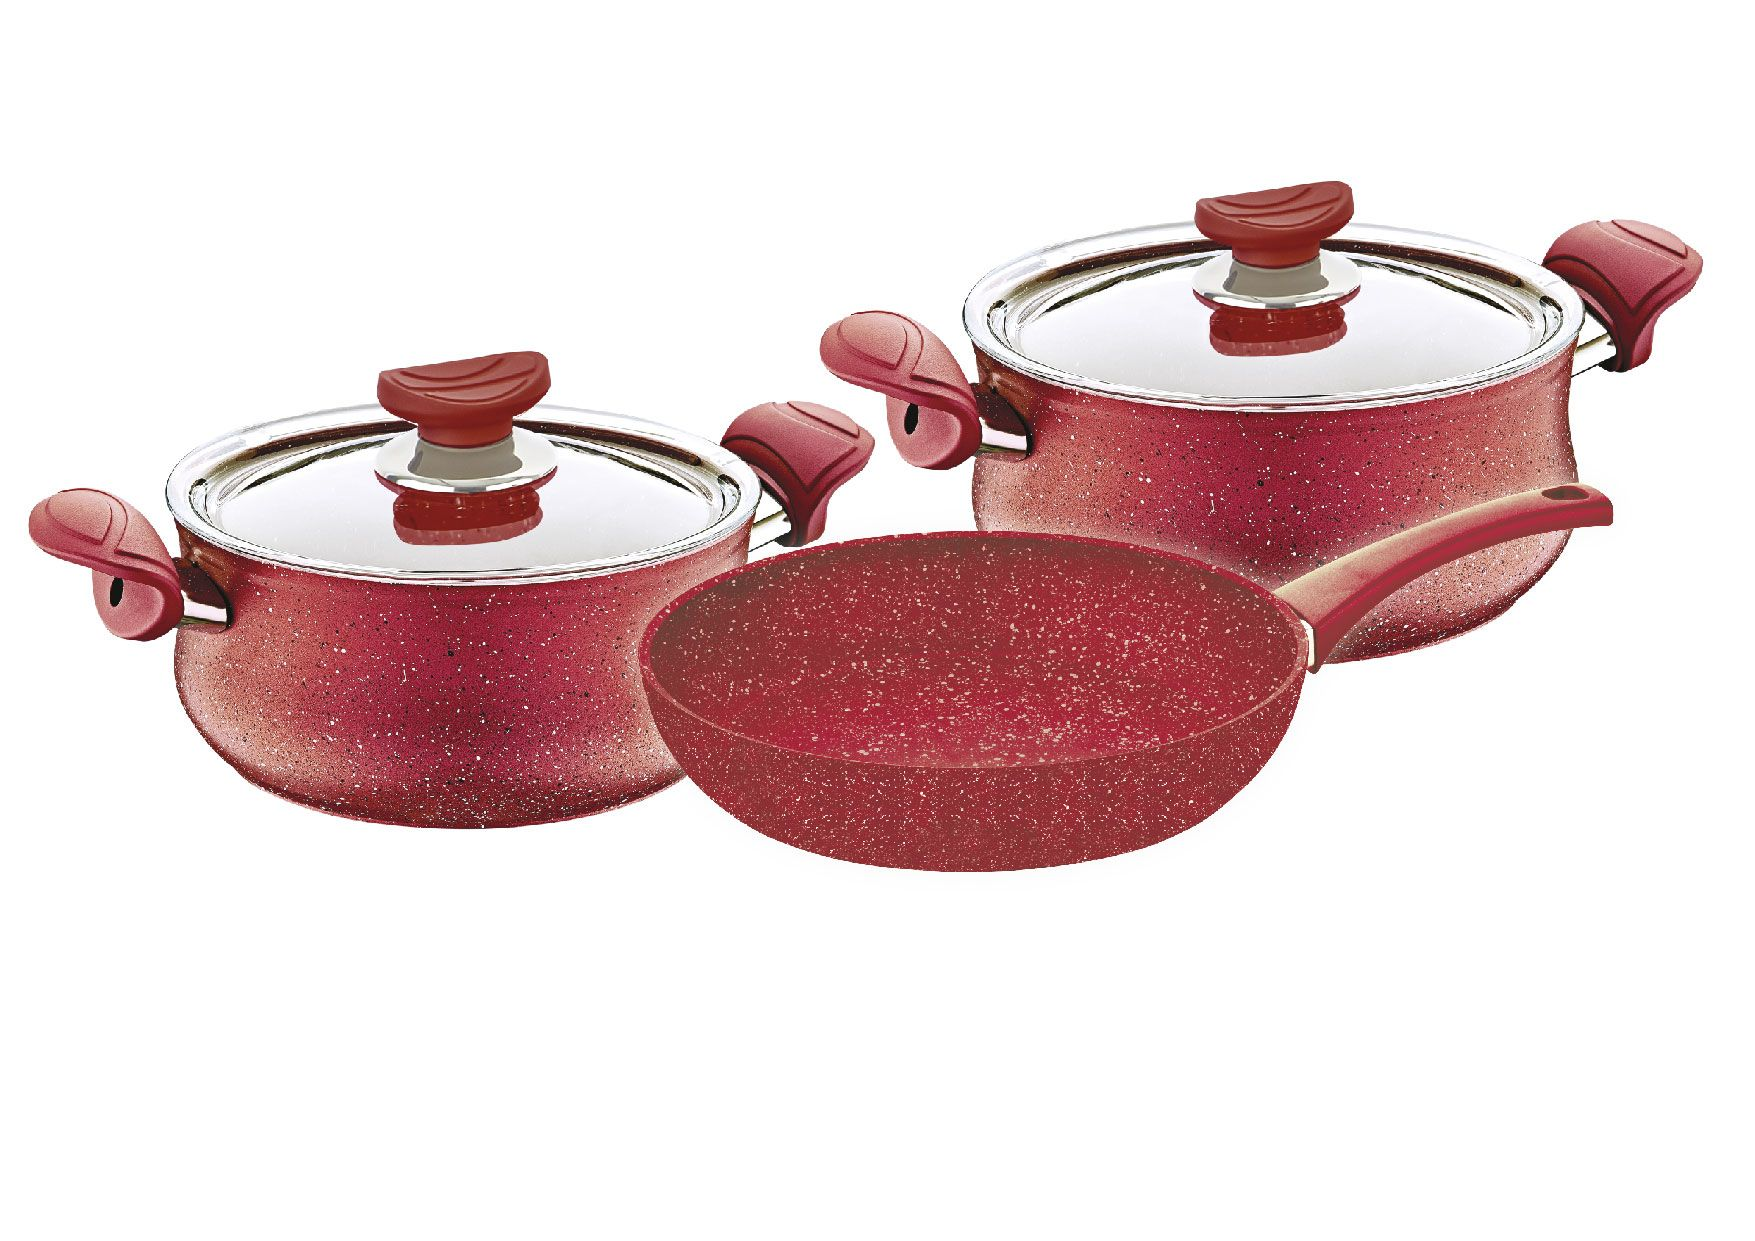 Oms 5 pcs Red Granitec Cookware Set - Made in Turkey